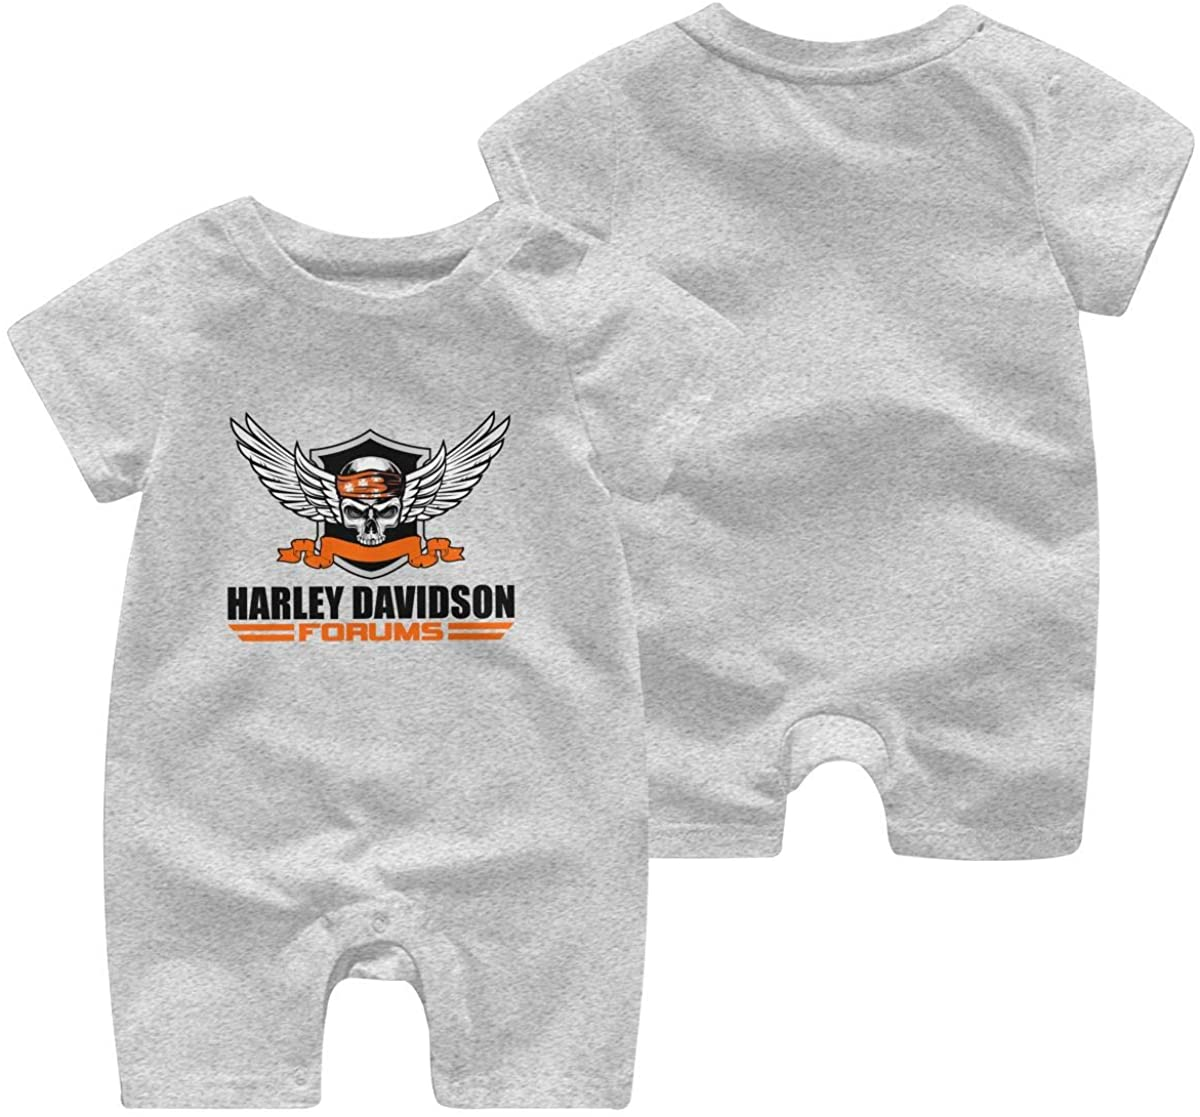 Harley Davidson One Piece Outfits Baby Solid Color Rompers with Button Kids Short Sleeve Playsuit Jumpsuits Cotton Clothing 0-3 Months Gray